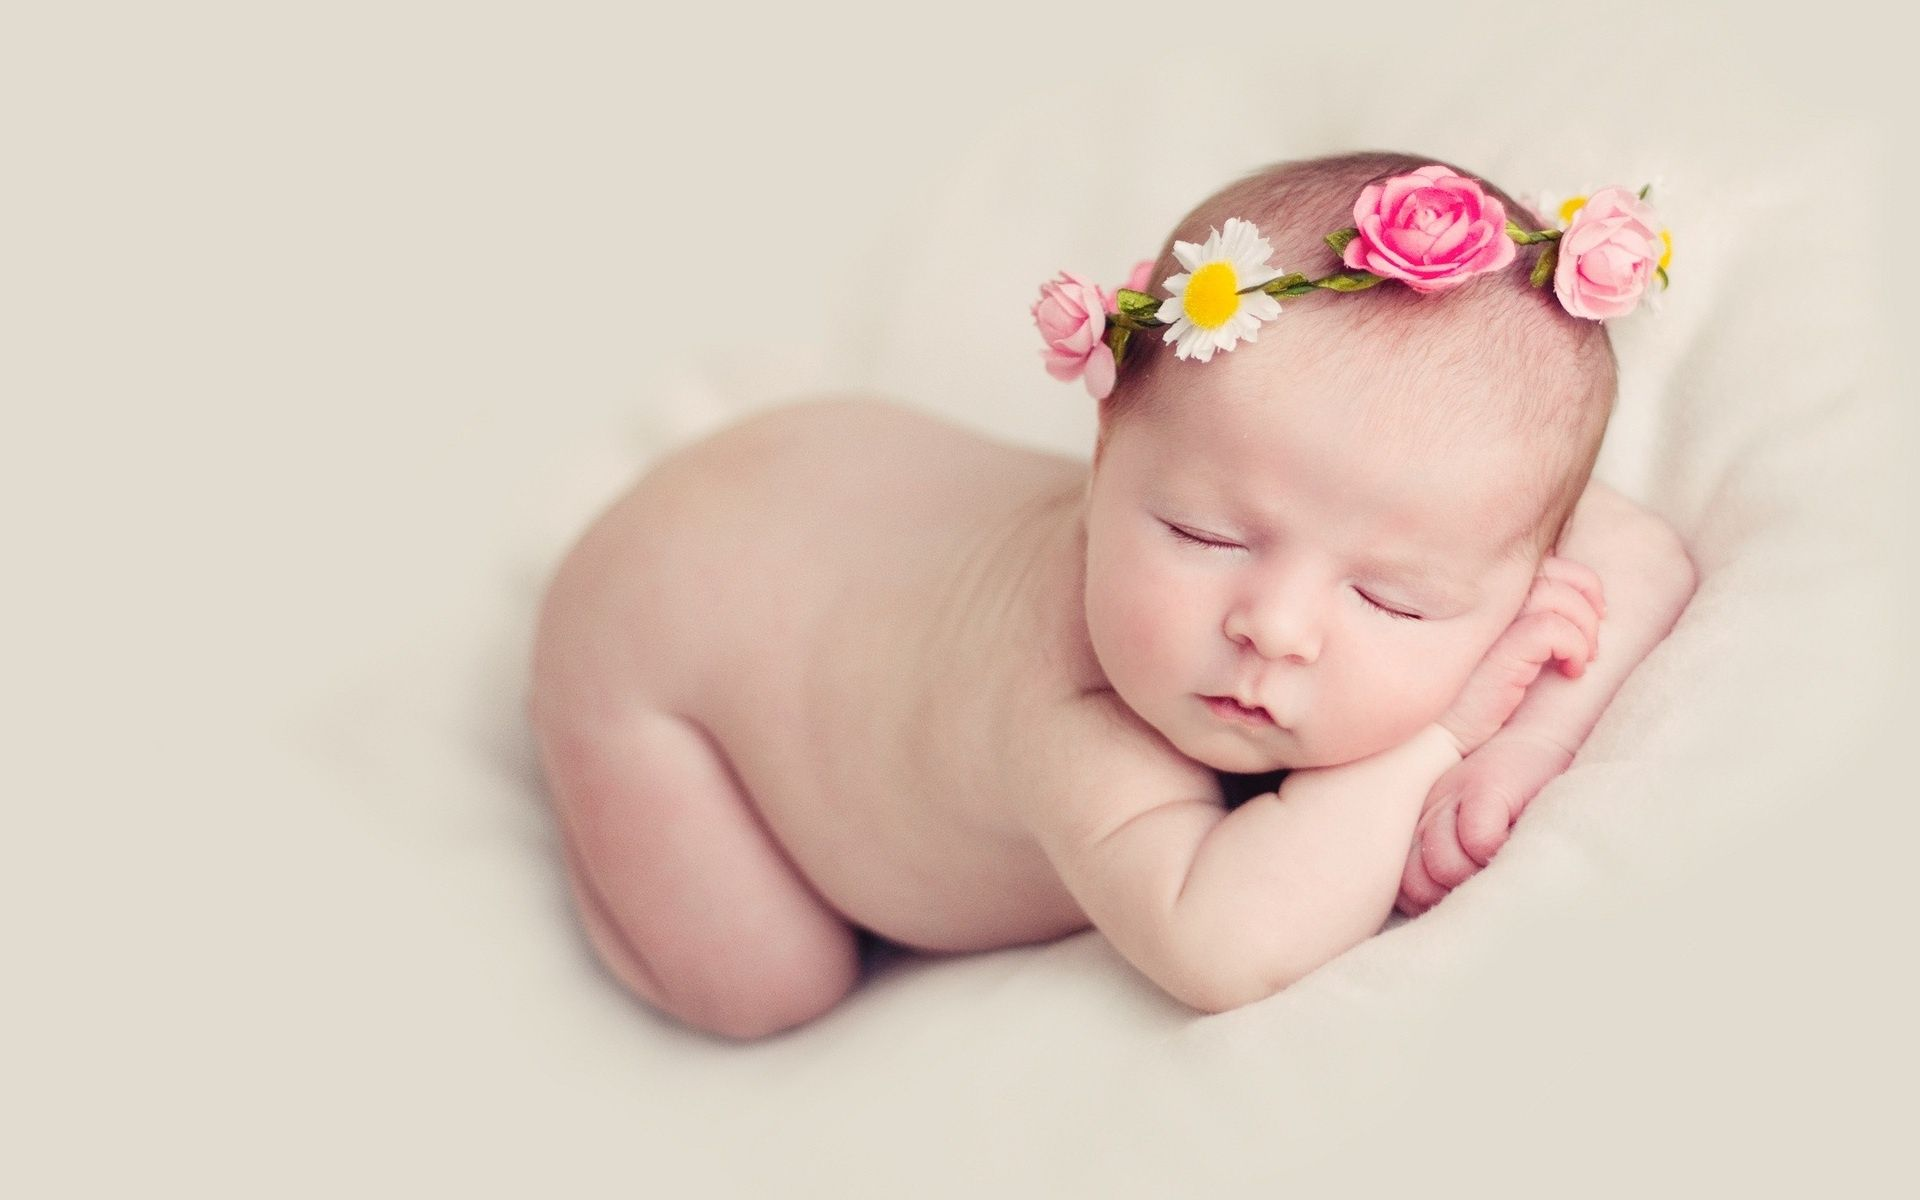 new born baby wallpaper of cute baby smile hd wallpaper | all